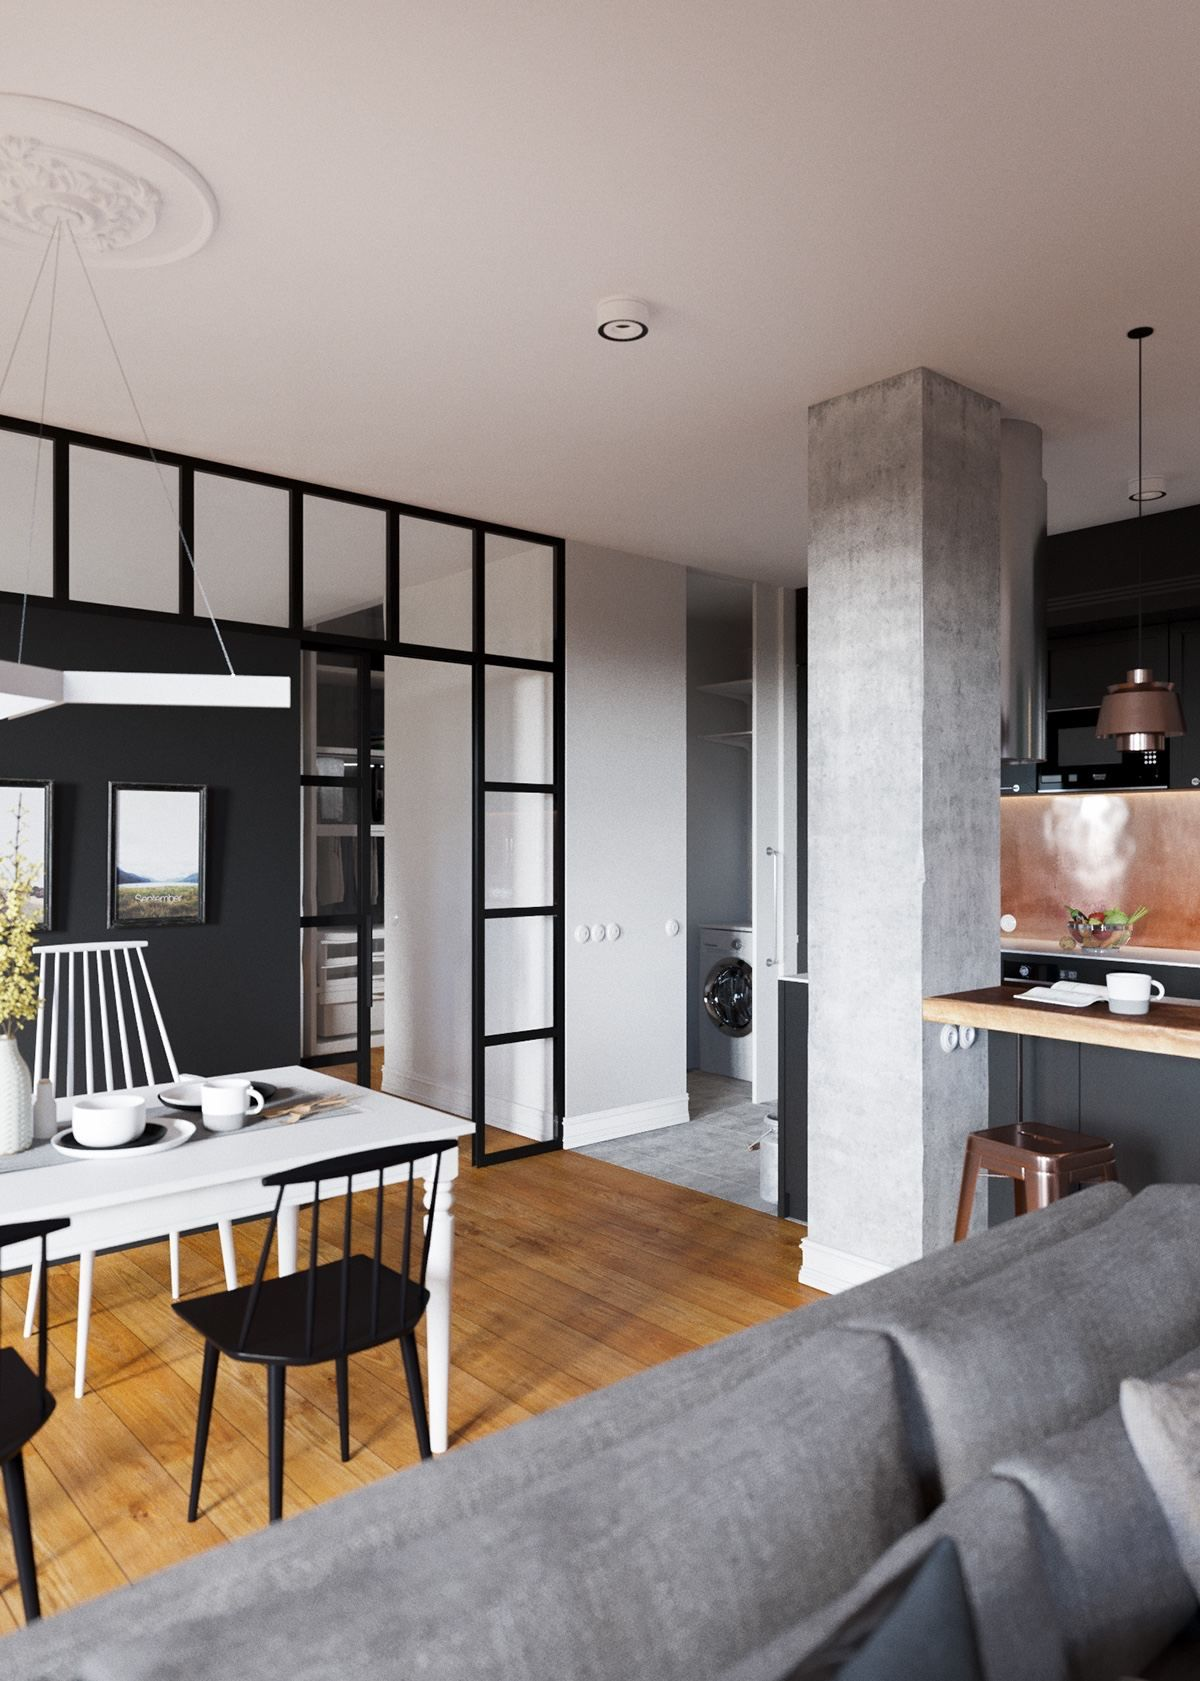 A Beautiful One Bedroom Bachelor Apartment Under 100